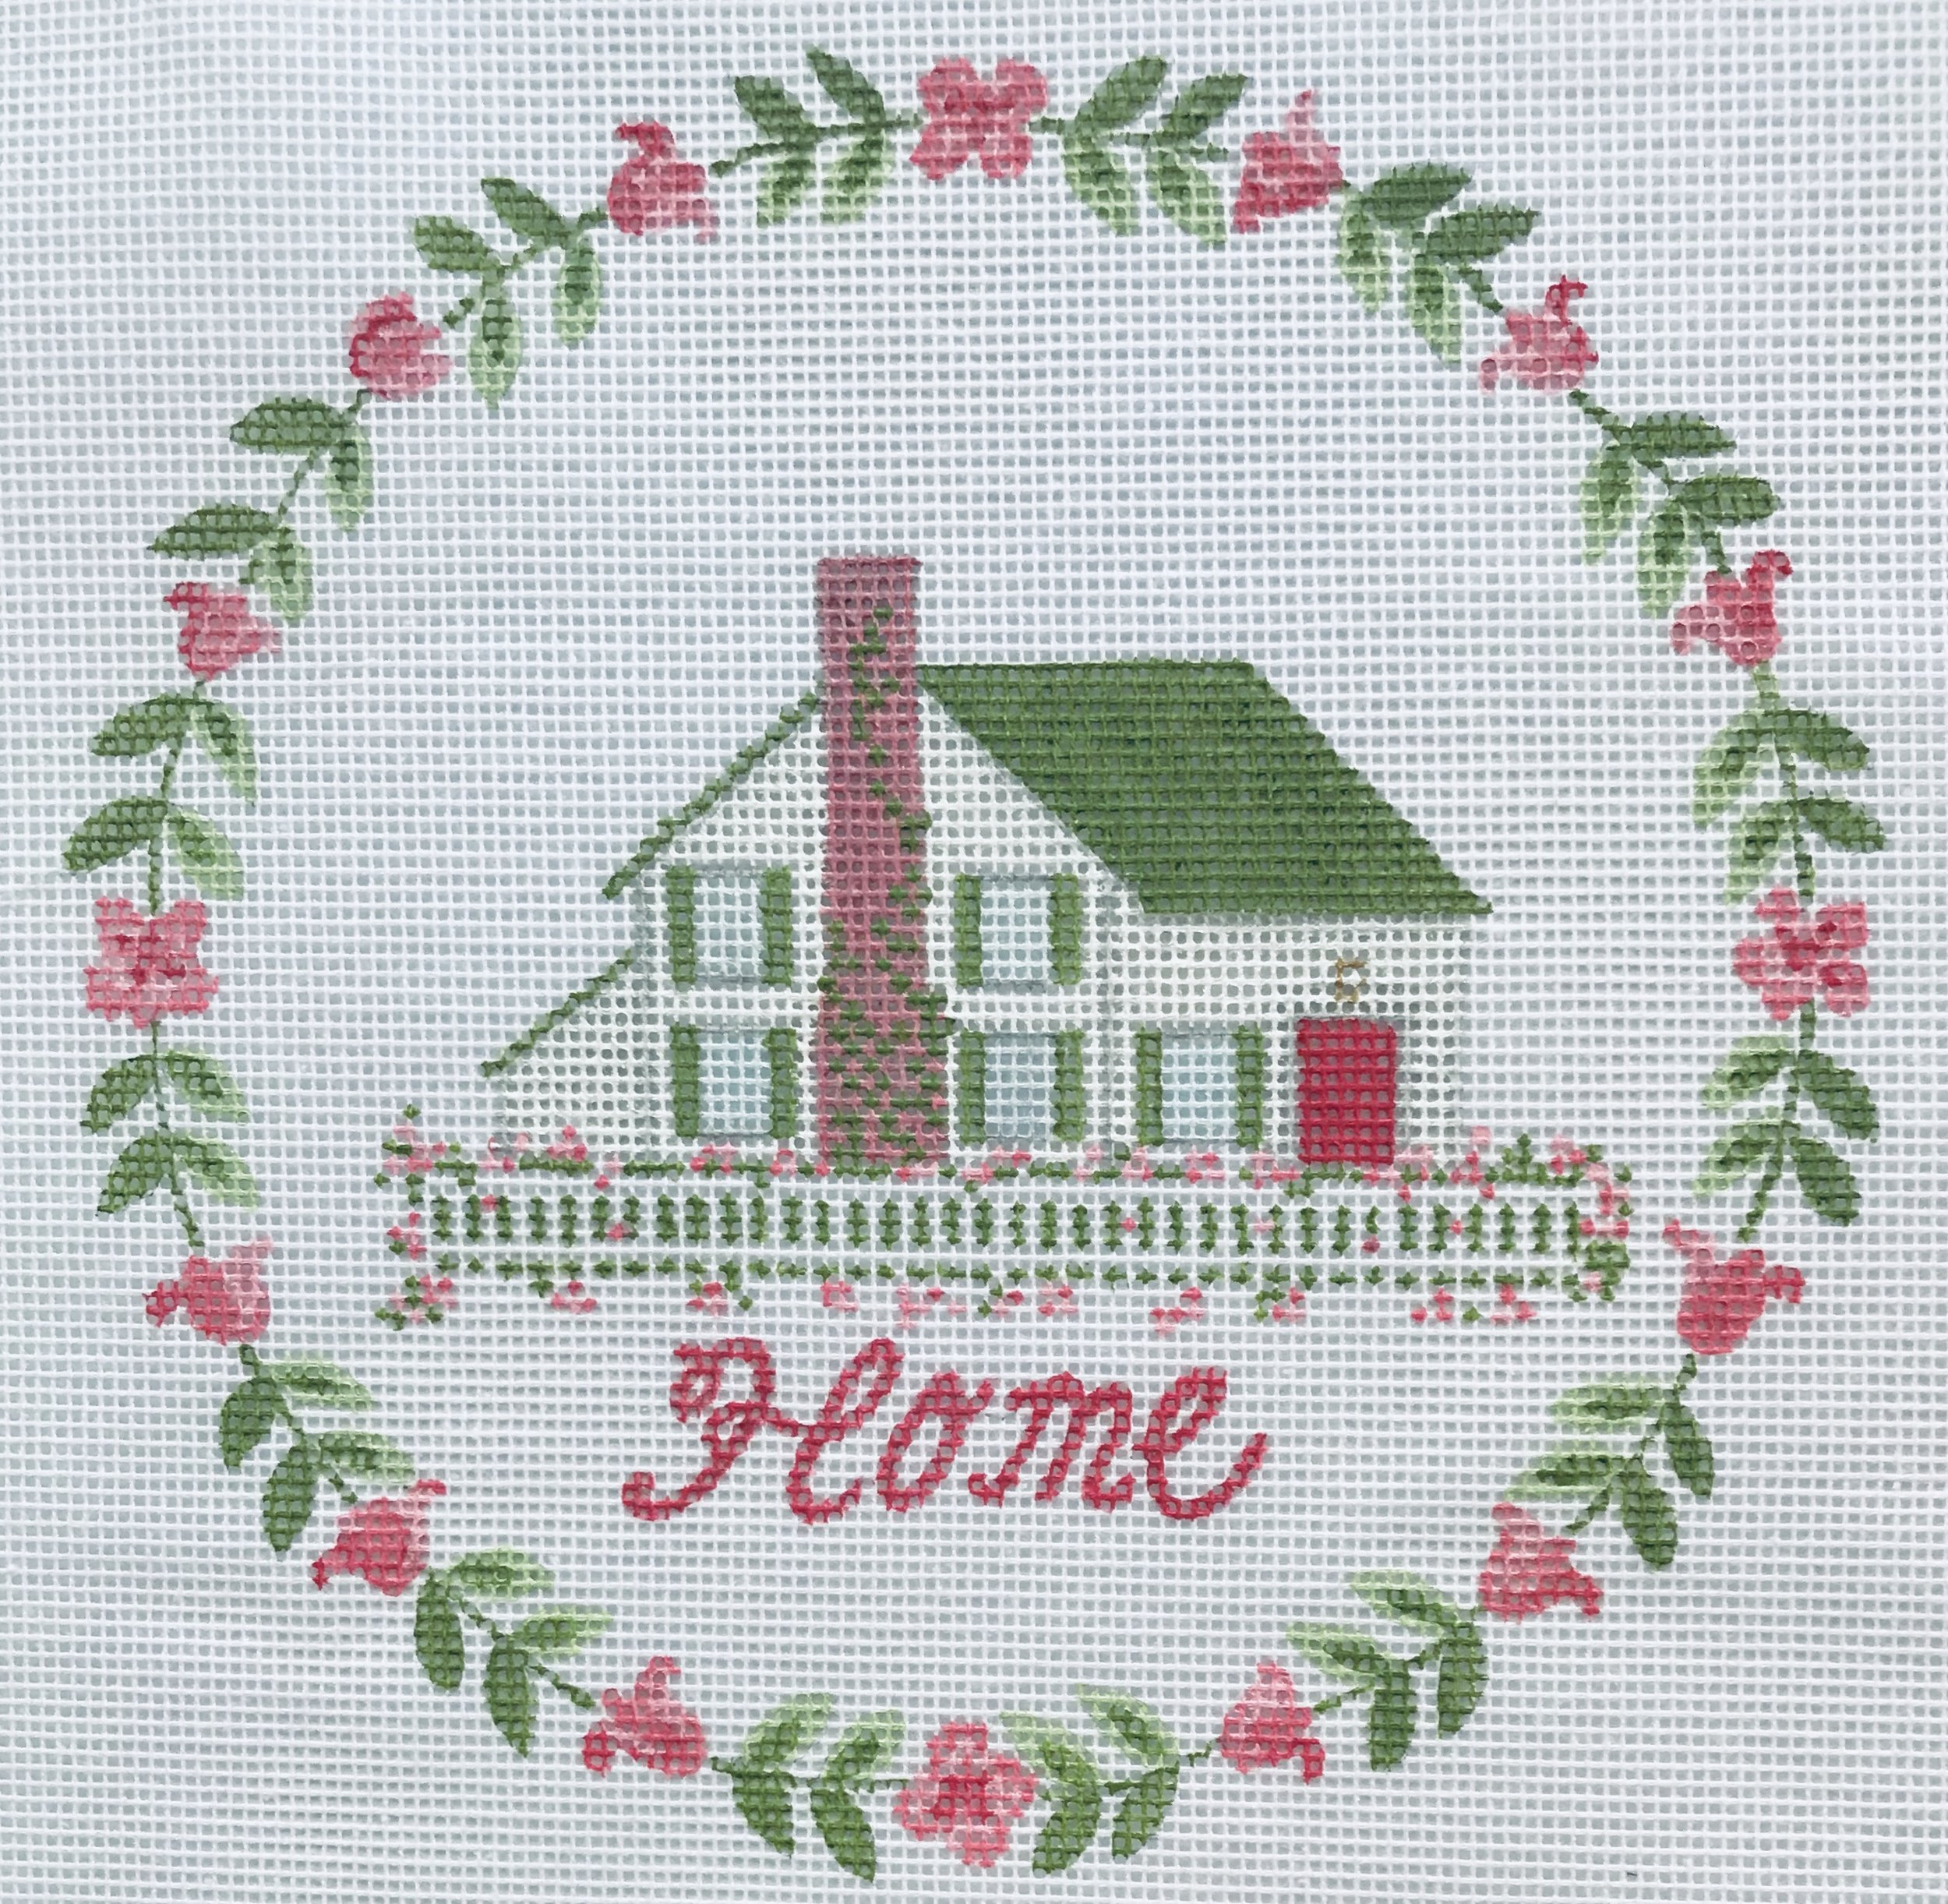 "Home - with ivy TSG16   8"" round on 14 mesh"